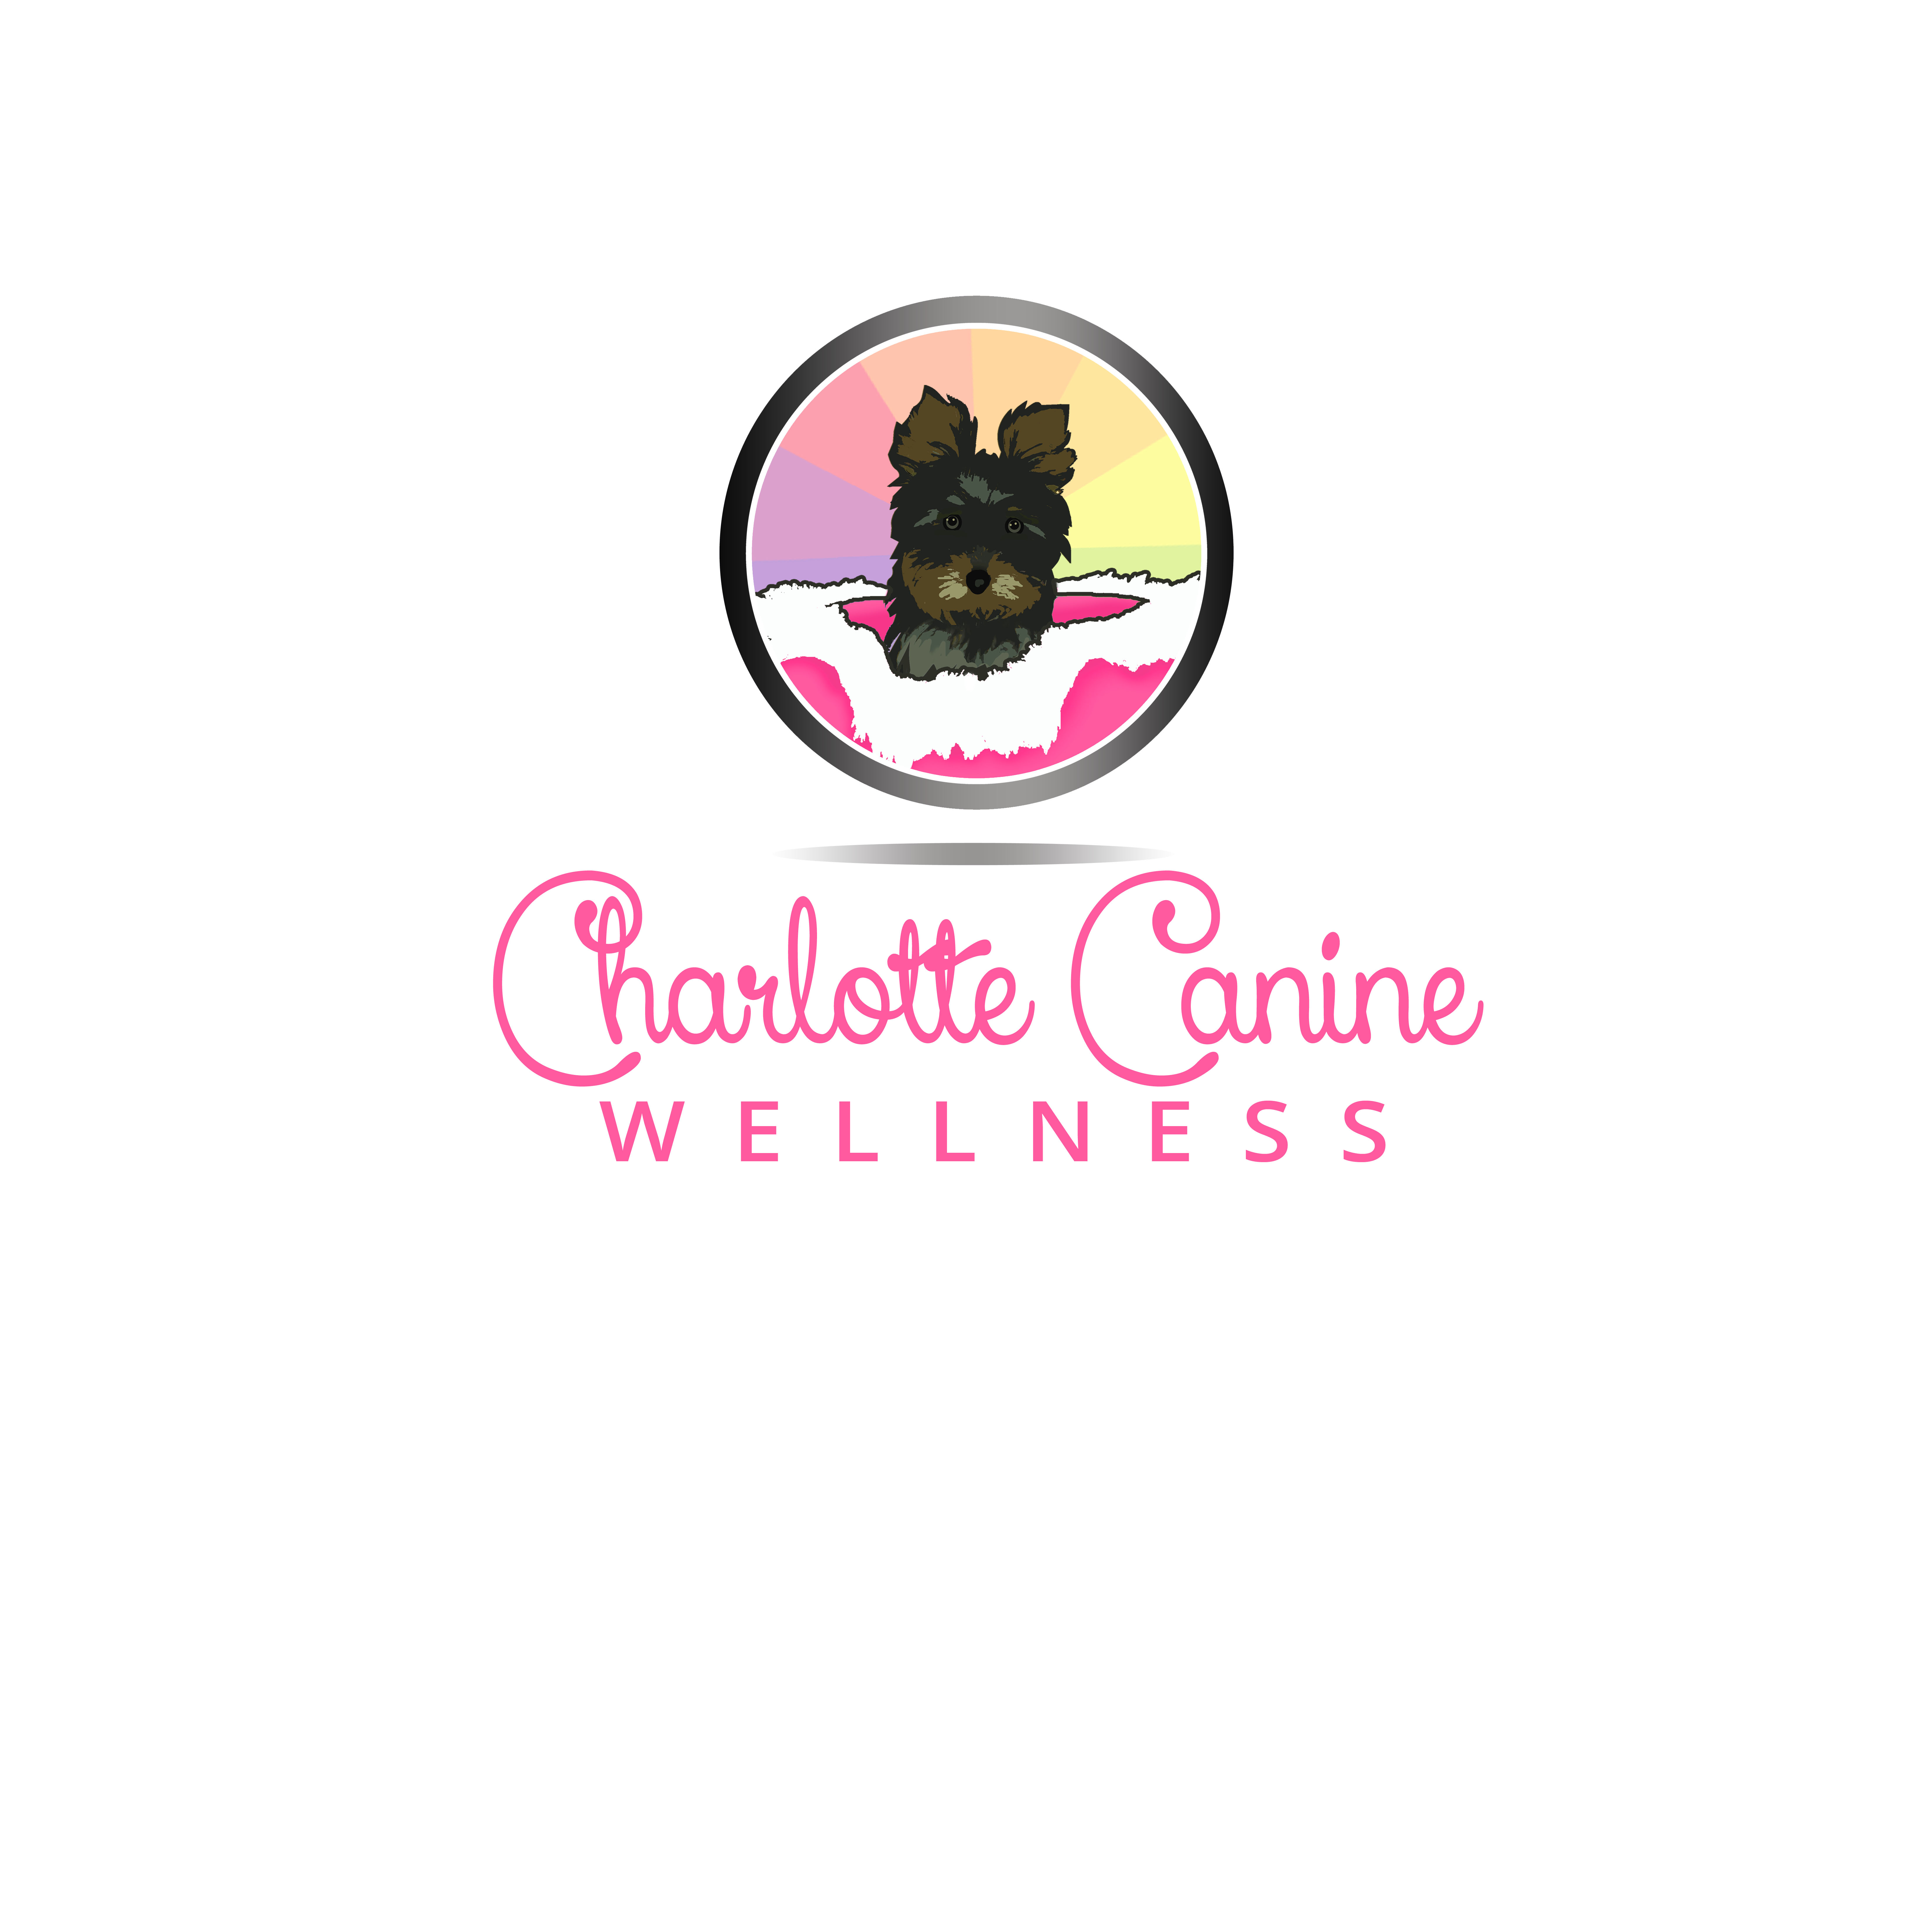 Logo Design by Allan Esclamado - Entry No. 96 in the Logo Design Contest New Logo Design for Charlotte Canine Wellness.